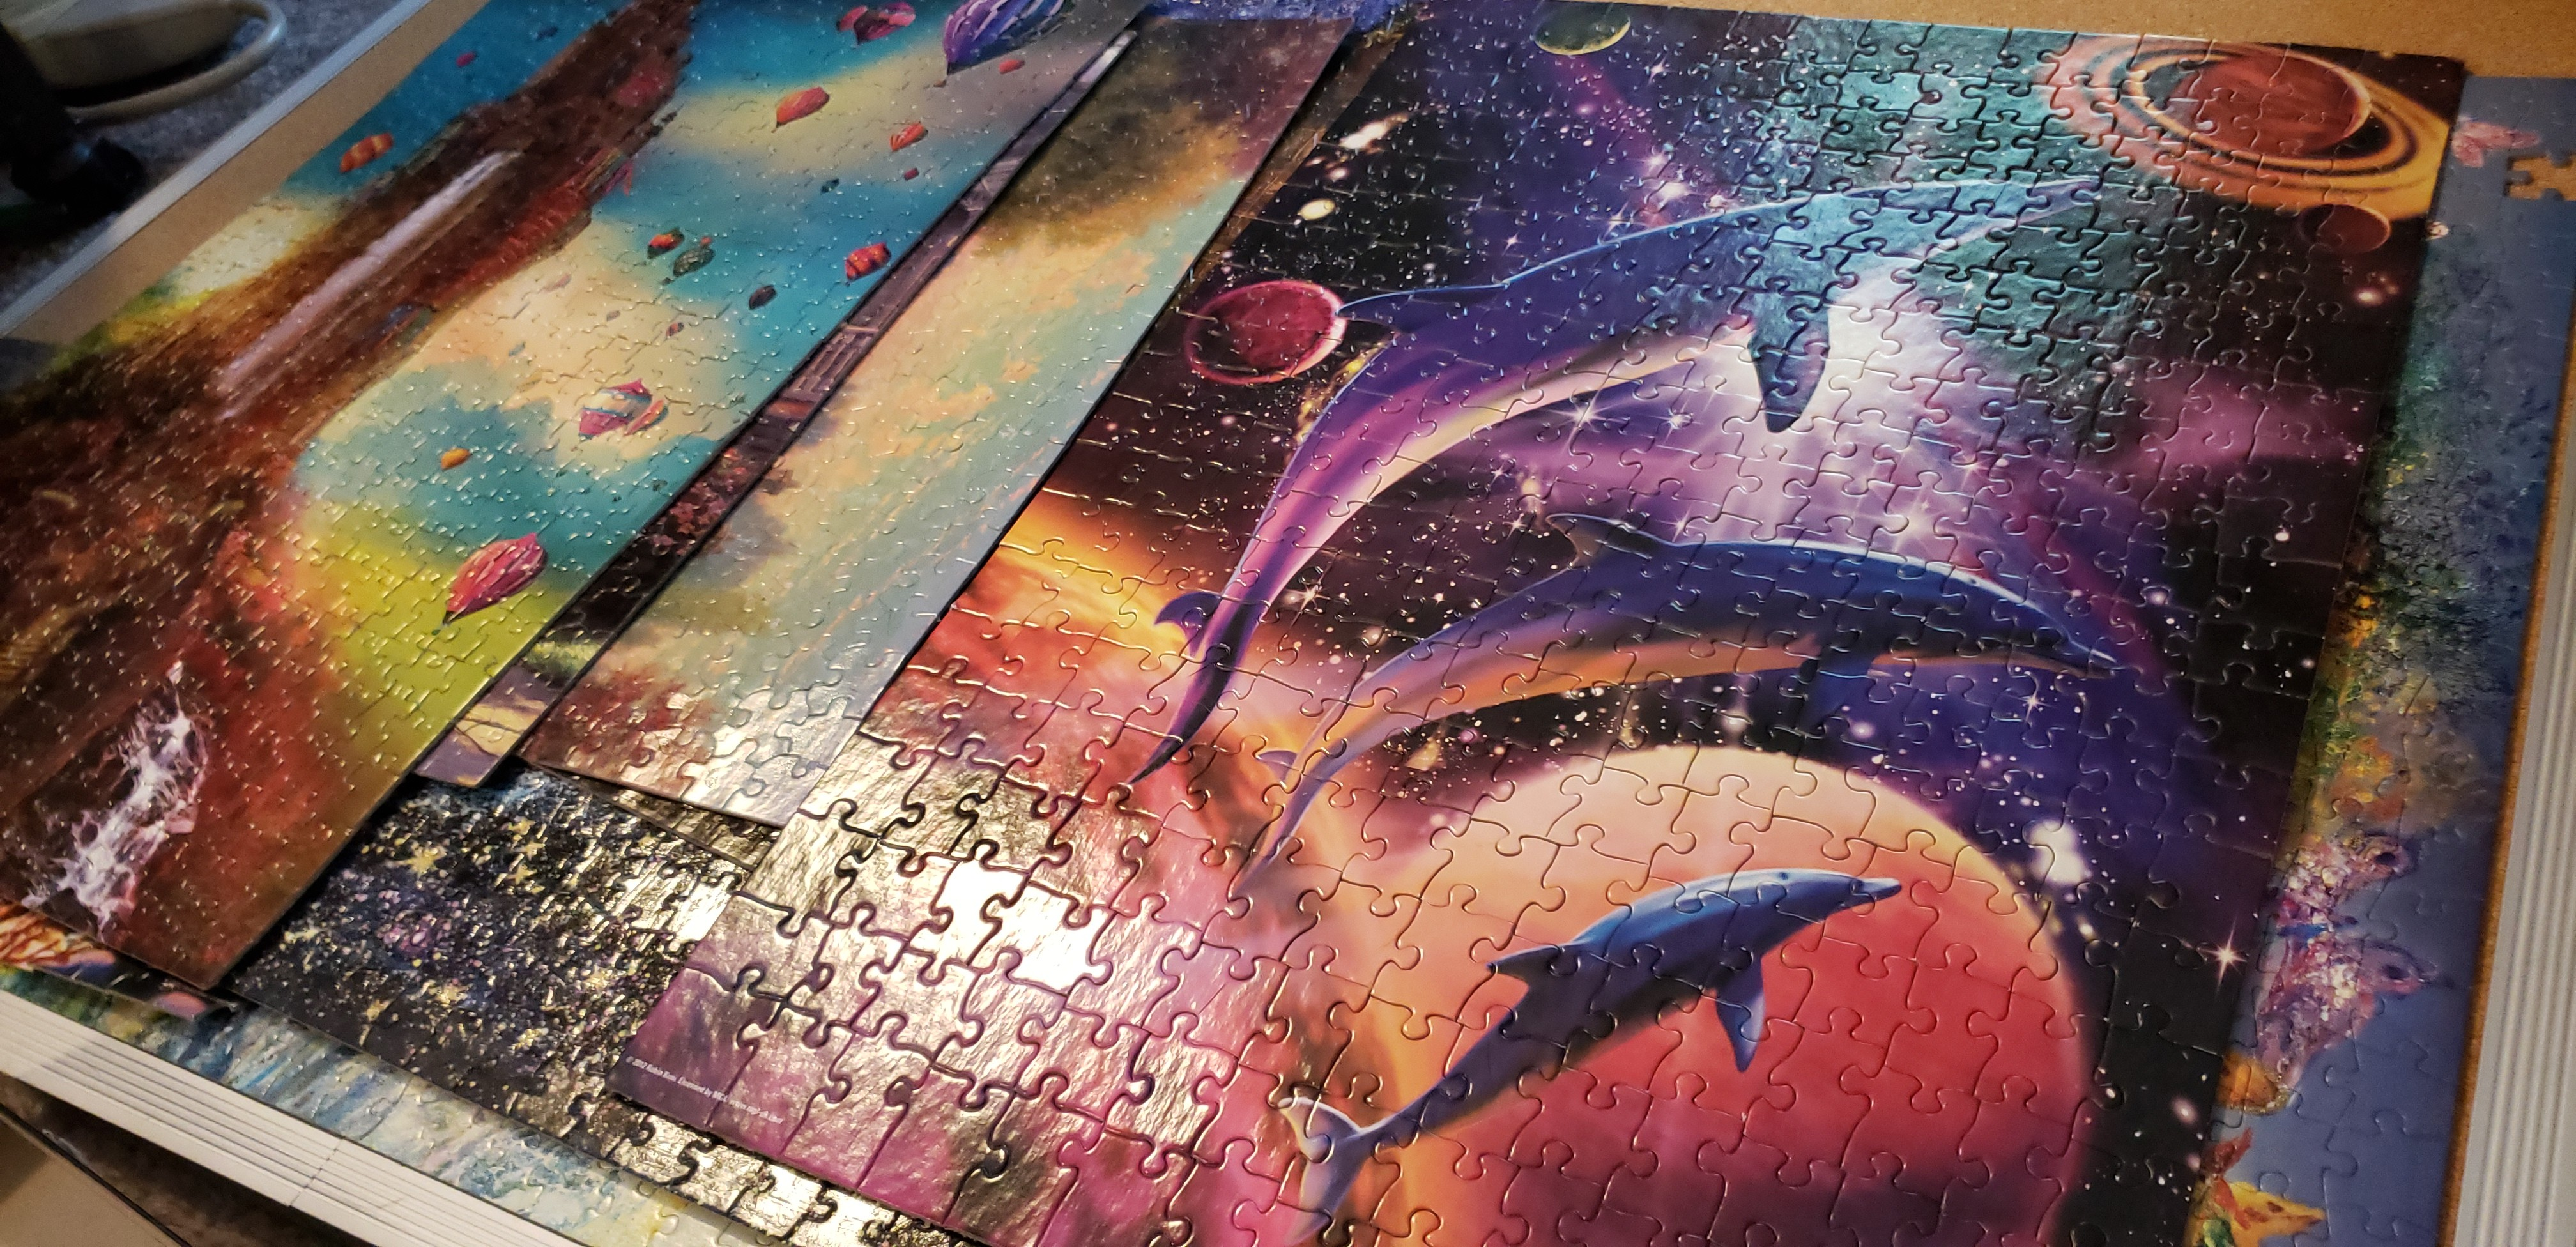 Puzzling is love!